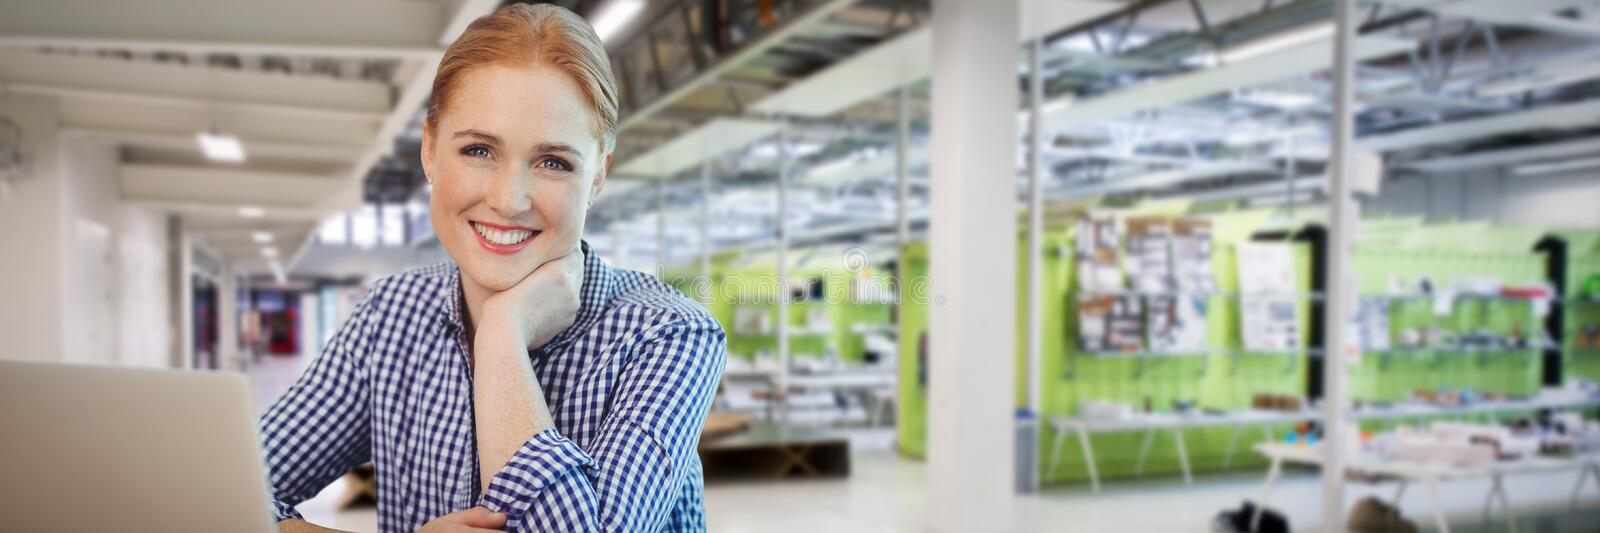 Composite image of smiling businesswoman sititng with laptop against white background stock photo